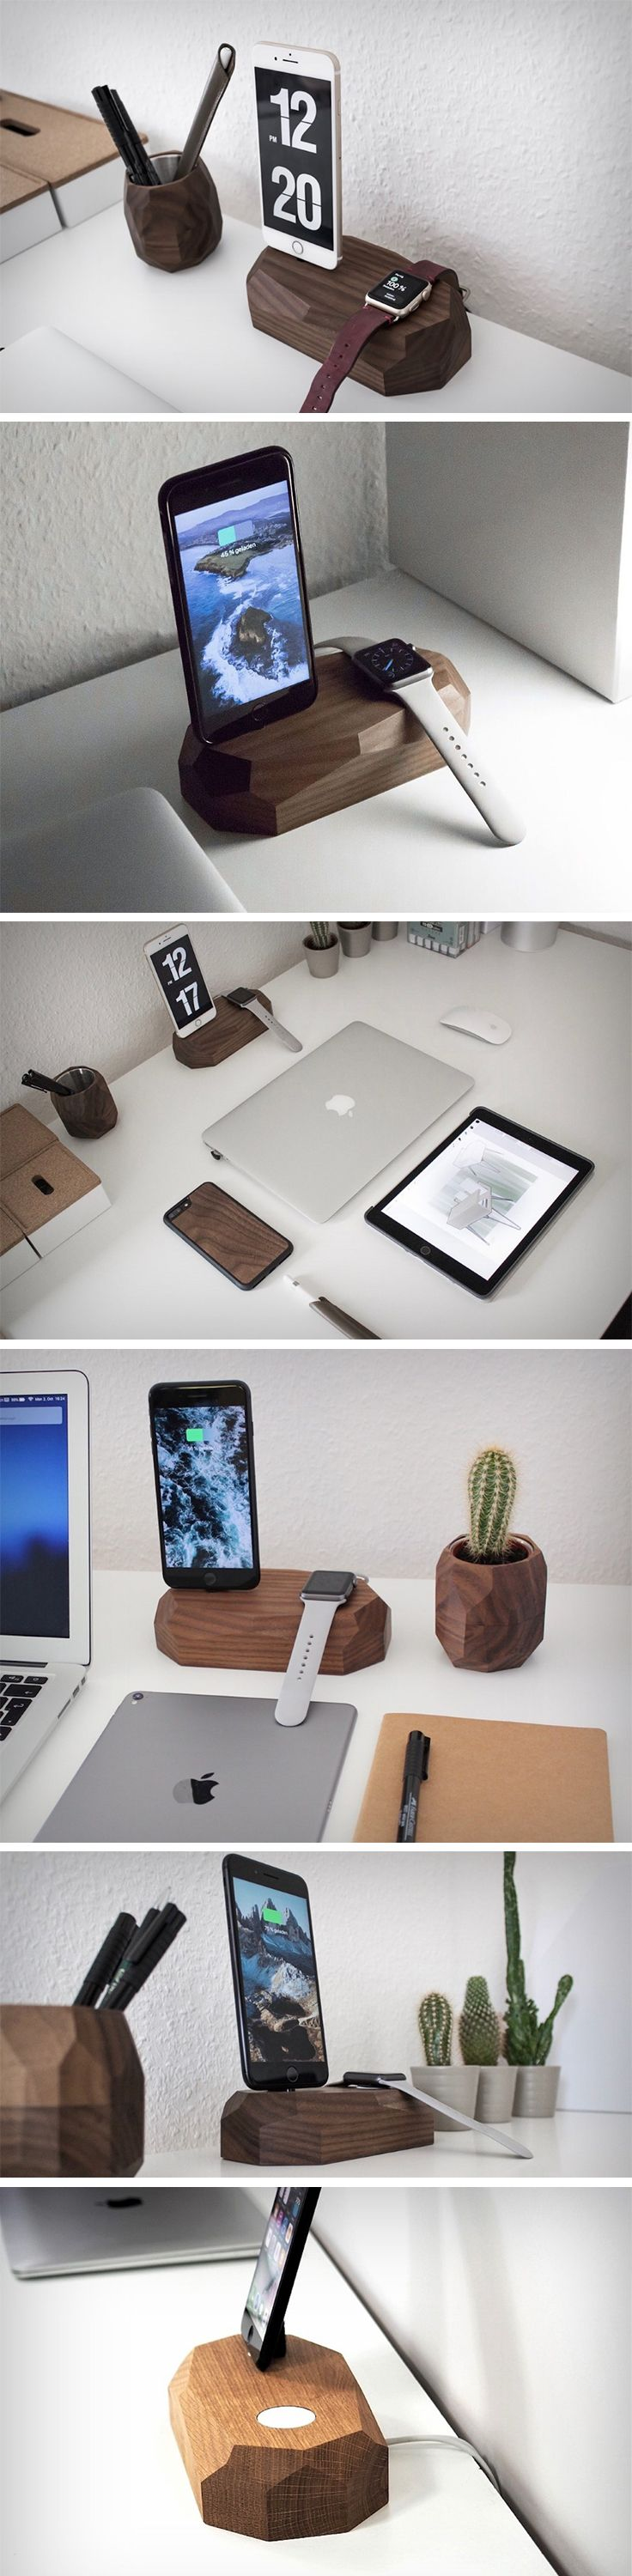 It's 2018 and plugging phones into wall-sockets is finally old-school. The new solution? Docks. Made out of wood, and with a rather appealing faceted finish, the Combo sits on your desk like a throne for your iPhone and Apple Watch. Compatible with iPhone 5 onwards, and with all Apple Watches, the Combo allows you to route your charging cables through it, while your devices rest on the wooden block. BUY NOW!